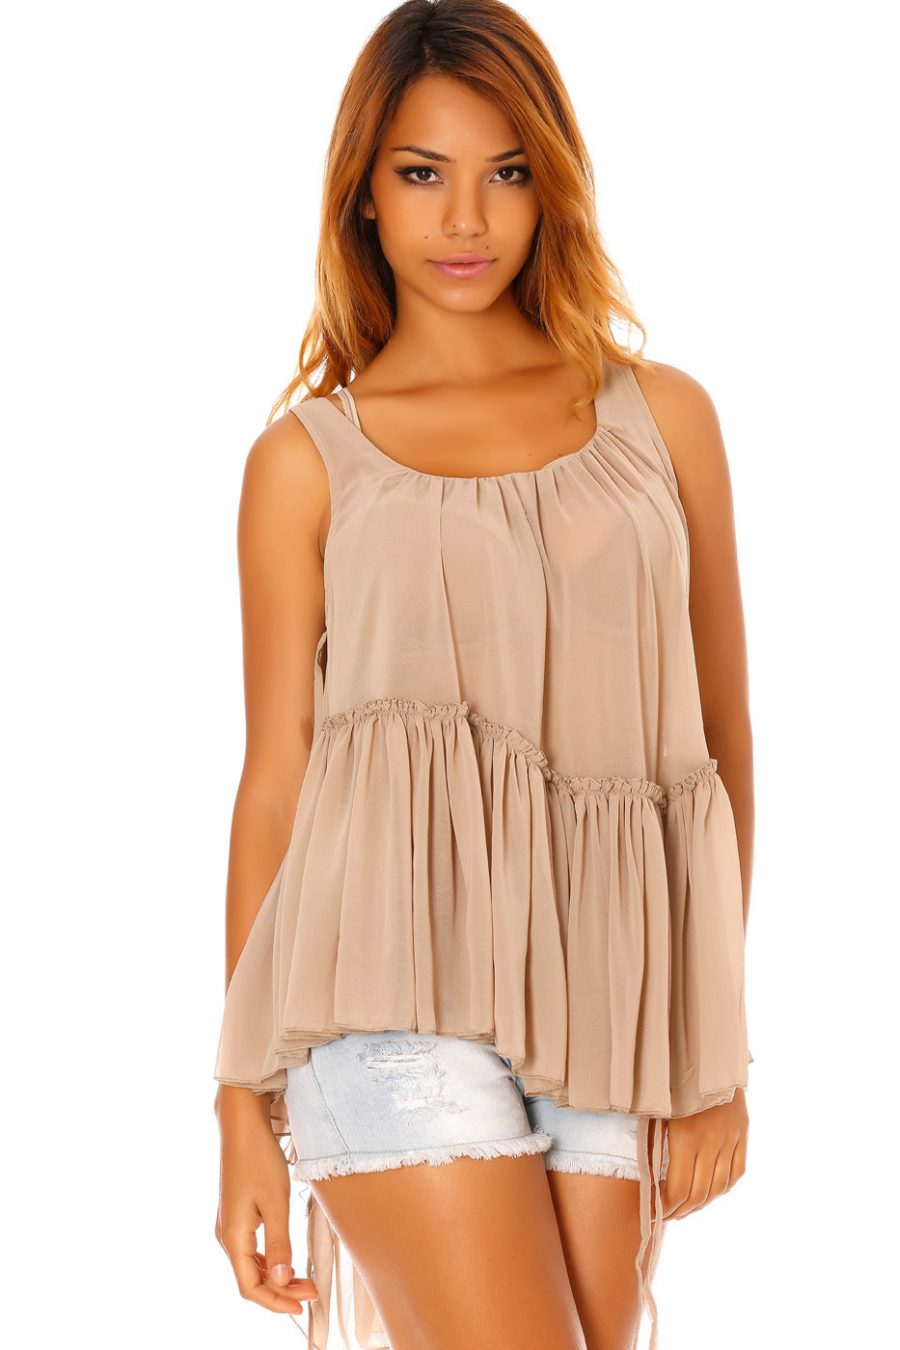 Top Taupe fluide transparent et asymétrique à volants. 1102